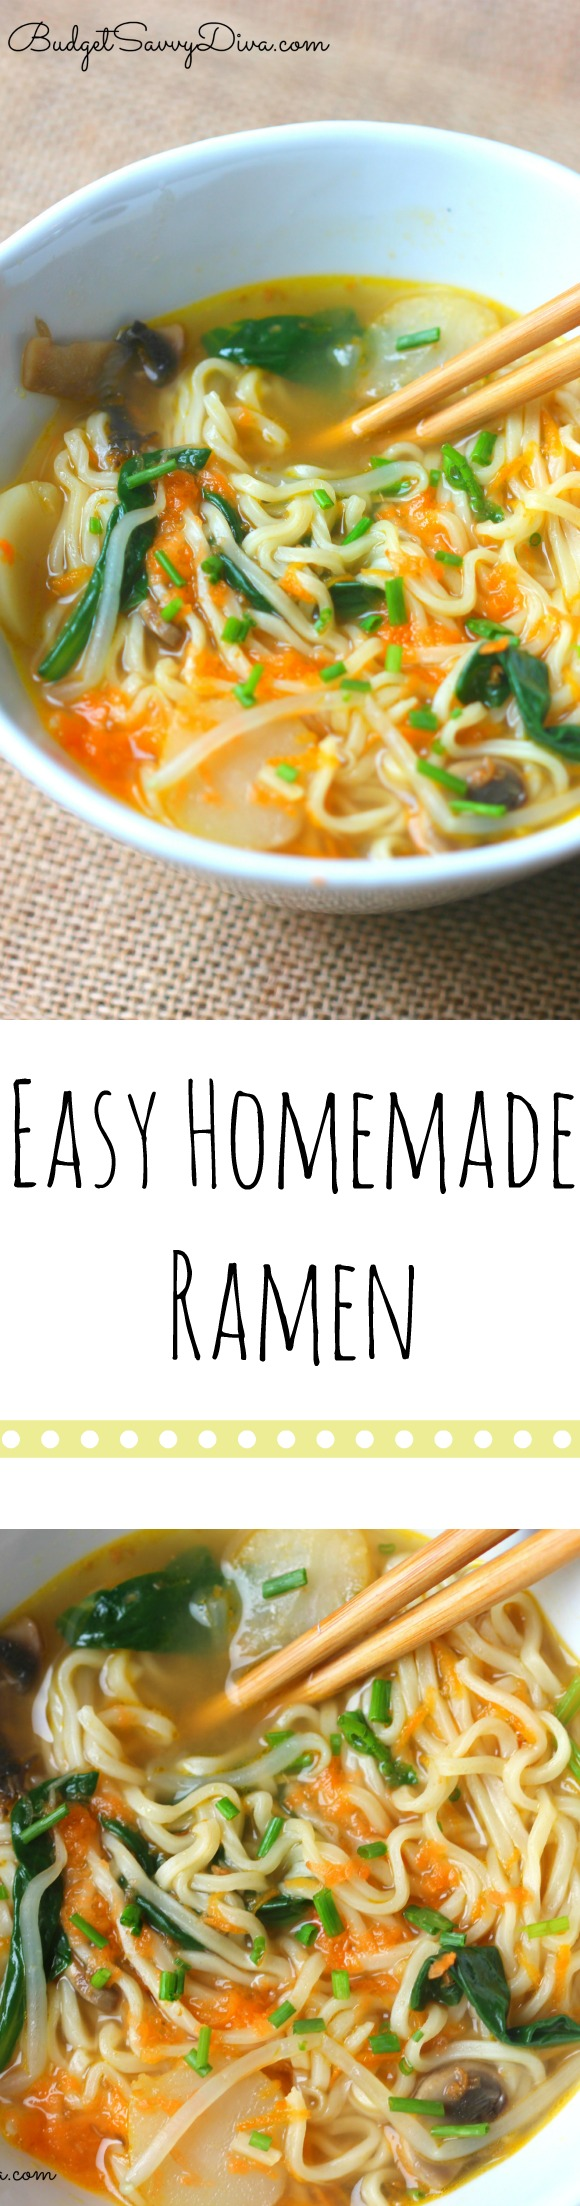 Easy Homemade Ramen Recipe